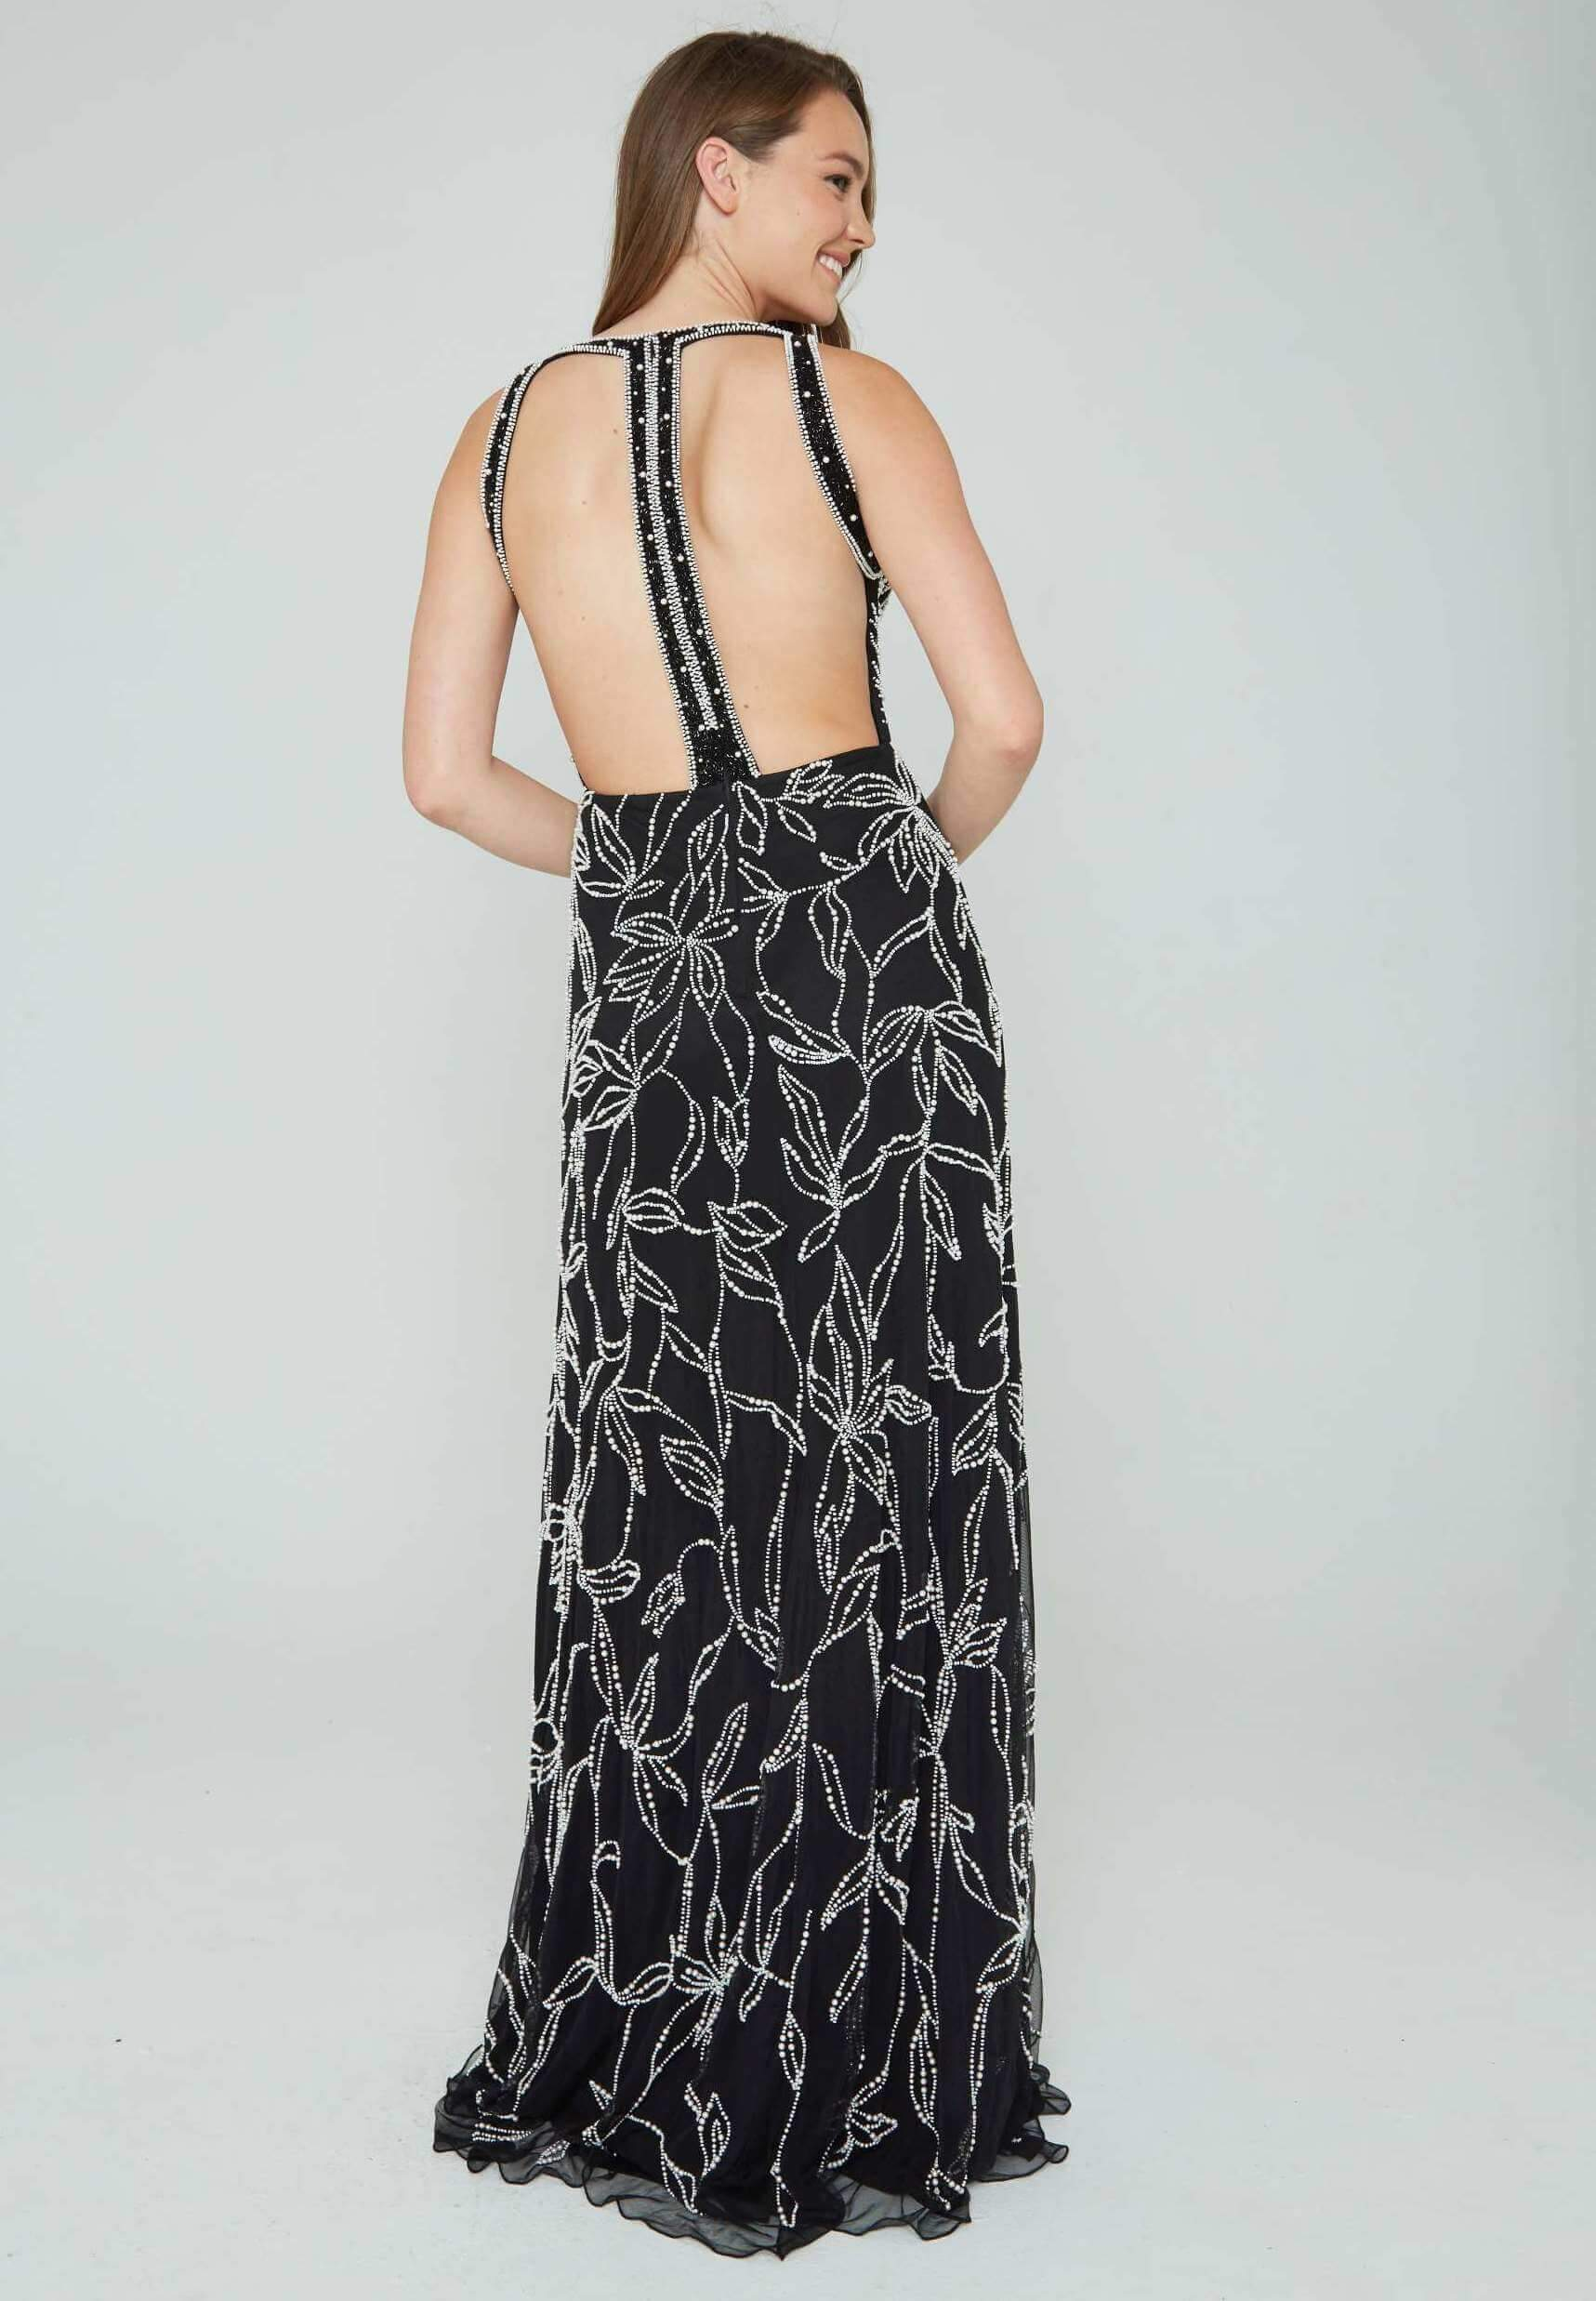 Style 165 Aleta Black Size 2 Plunge Backless Tall Height Straight Dress on Queenly